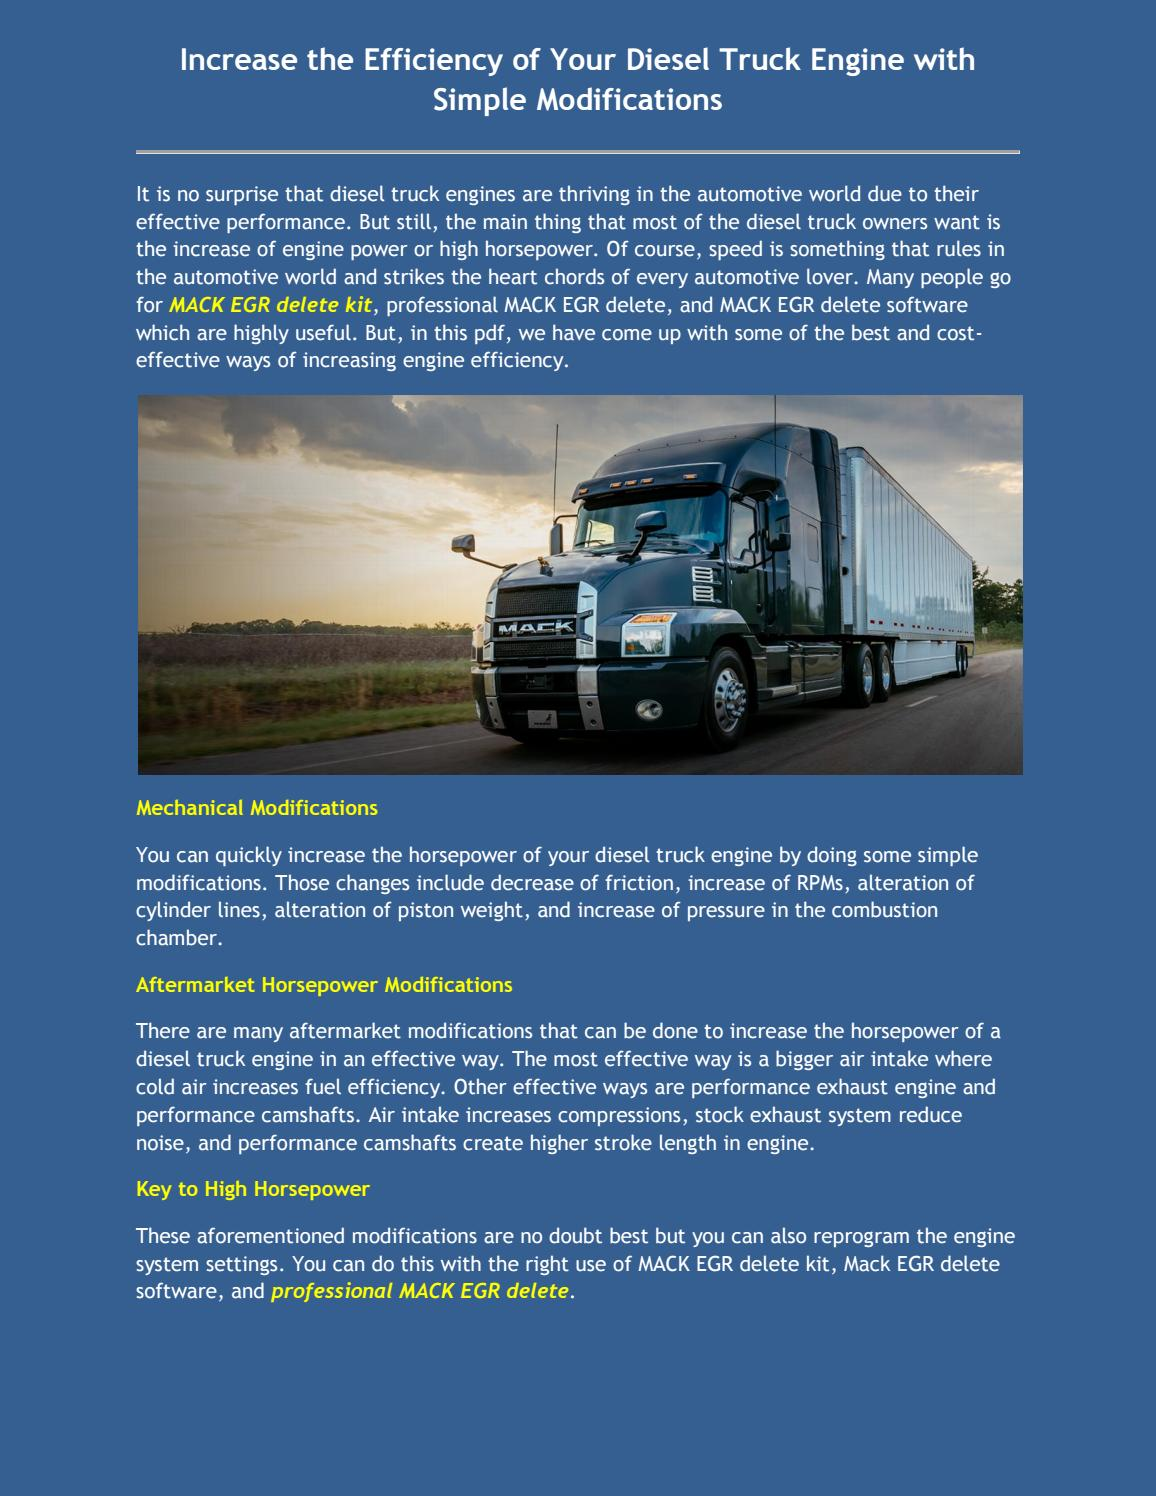 Increase the Efficiency of Your Diesel Truck Engine with Simple